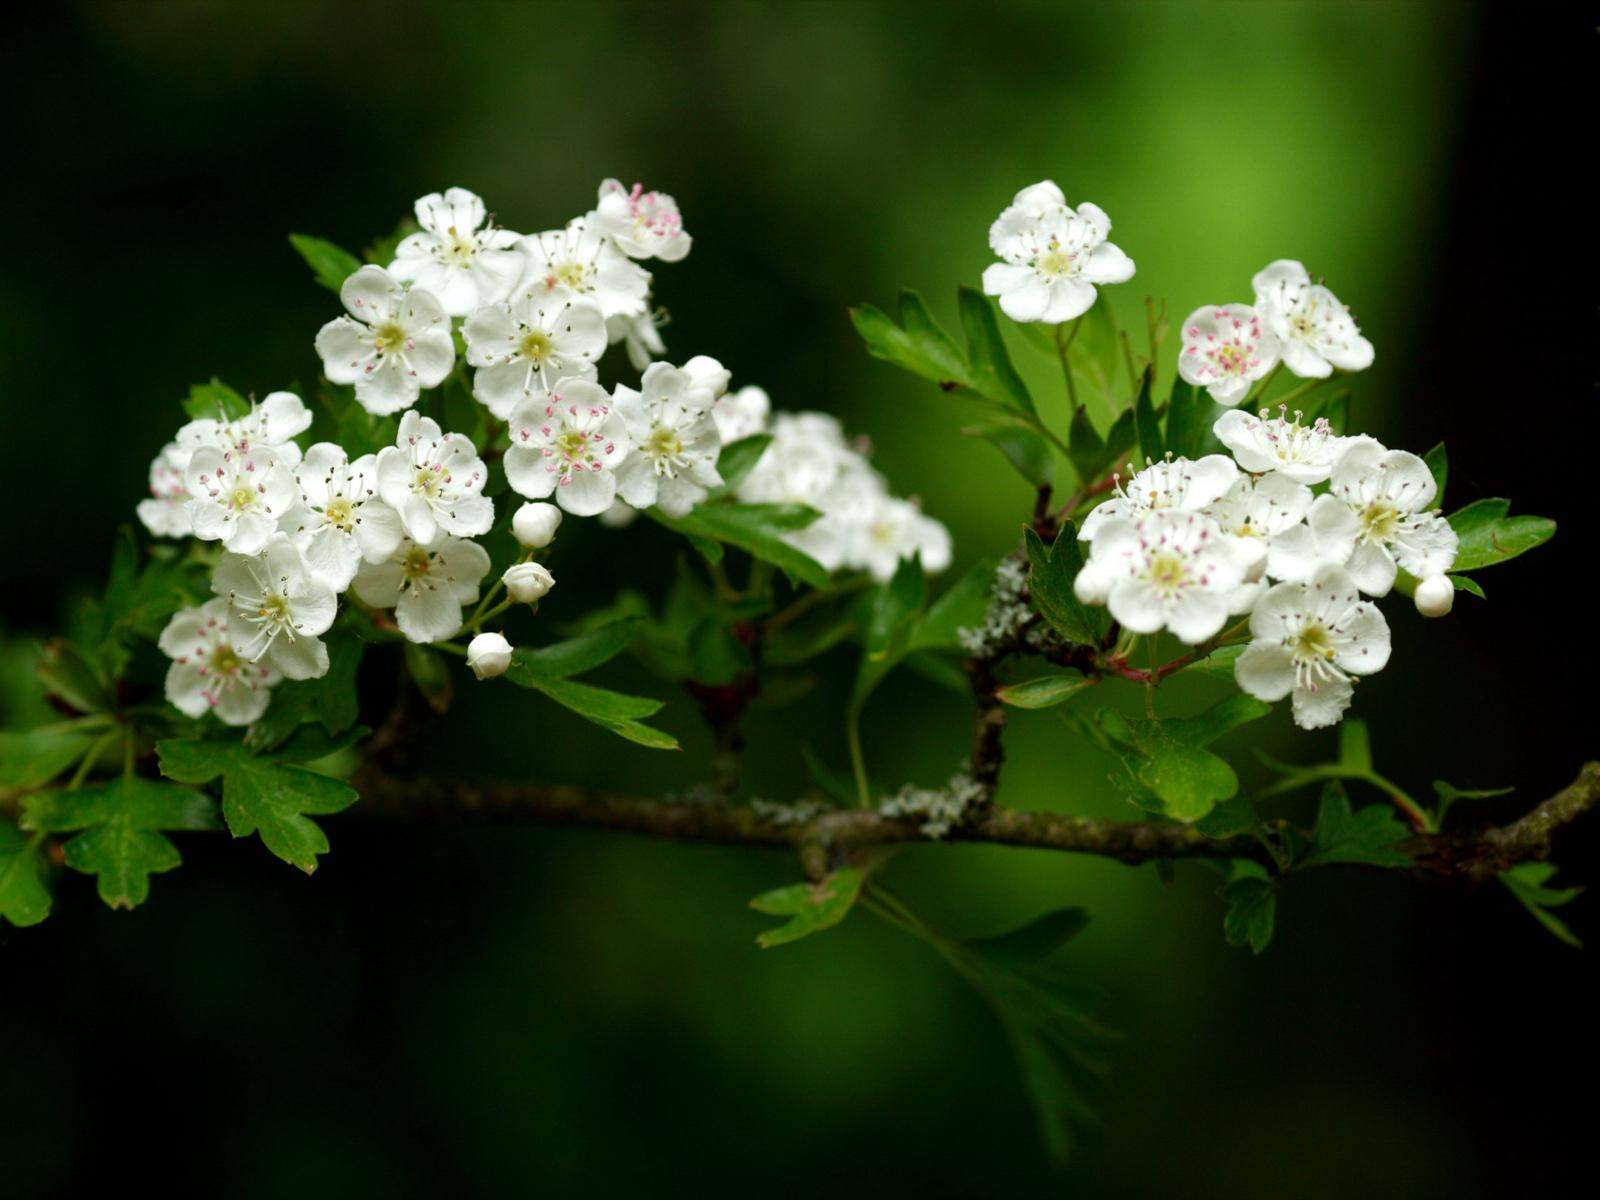 Beautiful flowers wallpapers wallpaper cave beautiful small white flowers wallpapers izmirmasajfo